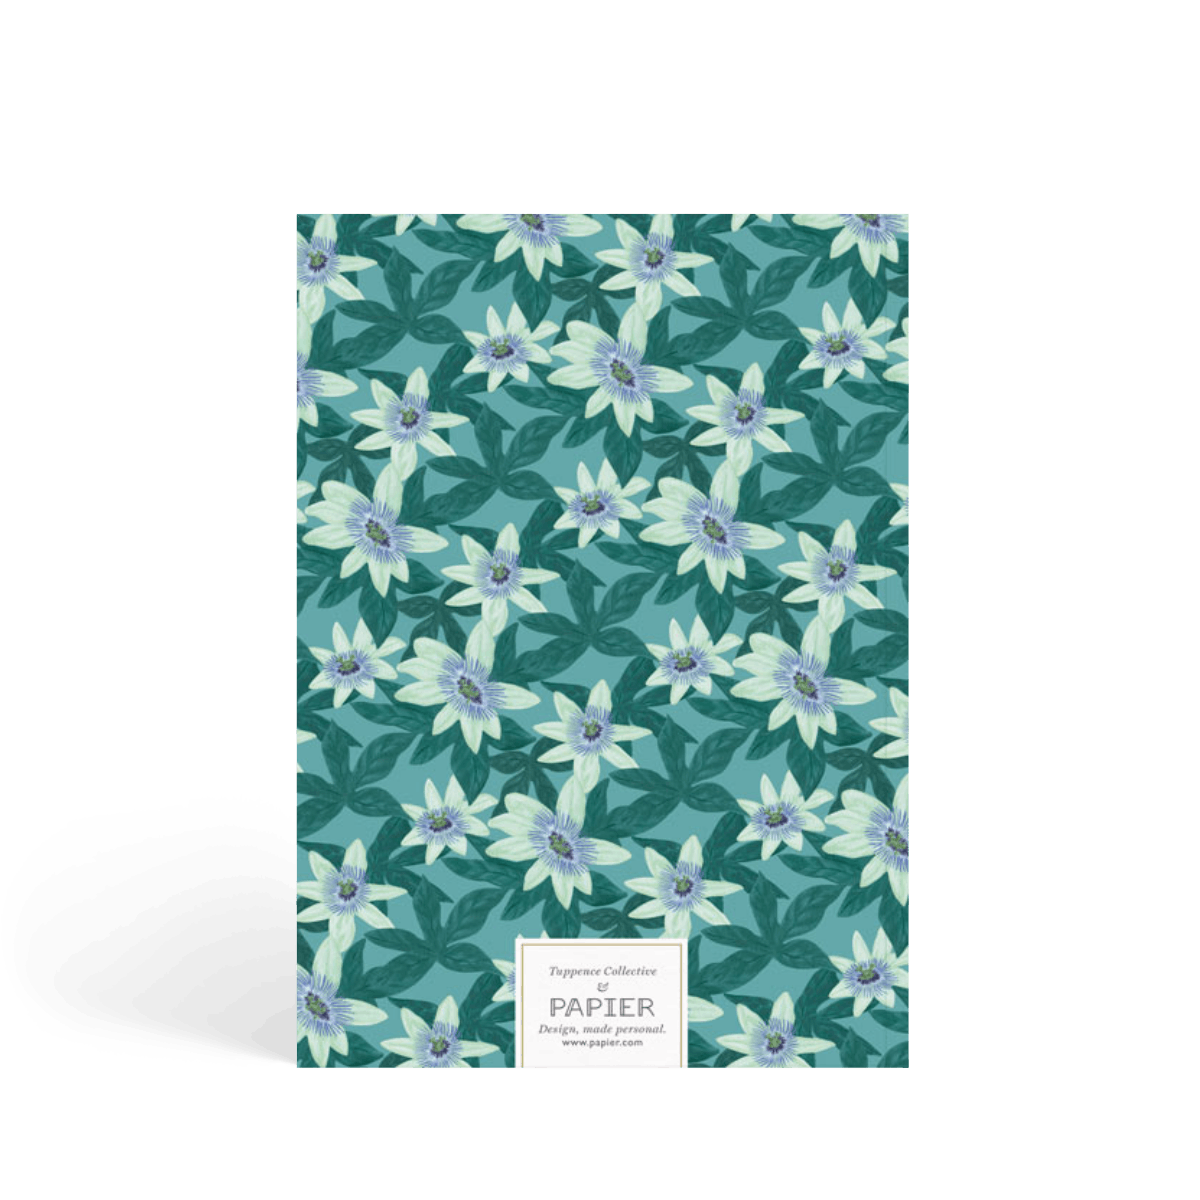 Https%3a%2f%2fwww.papier.com%2fproduct image%2f20831%2f5%2fpassion flower green 5317 back 1490022648.png?ixlib=rb 1.1